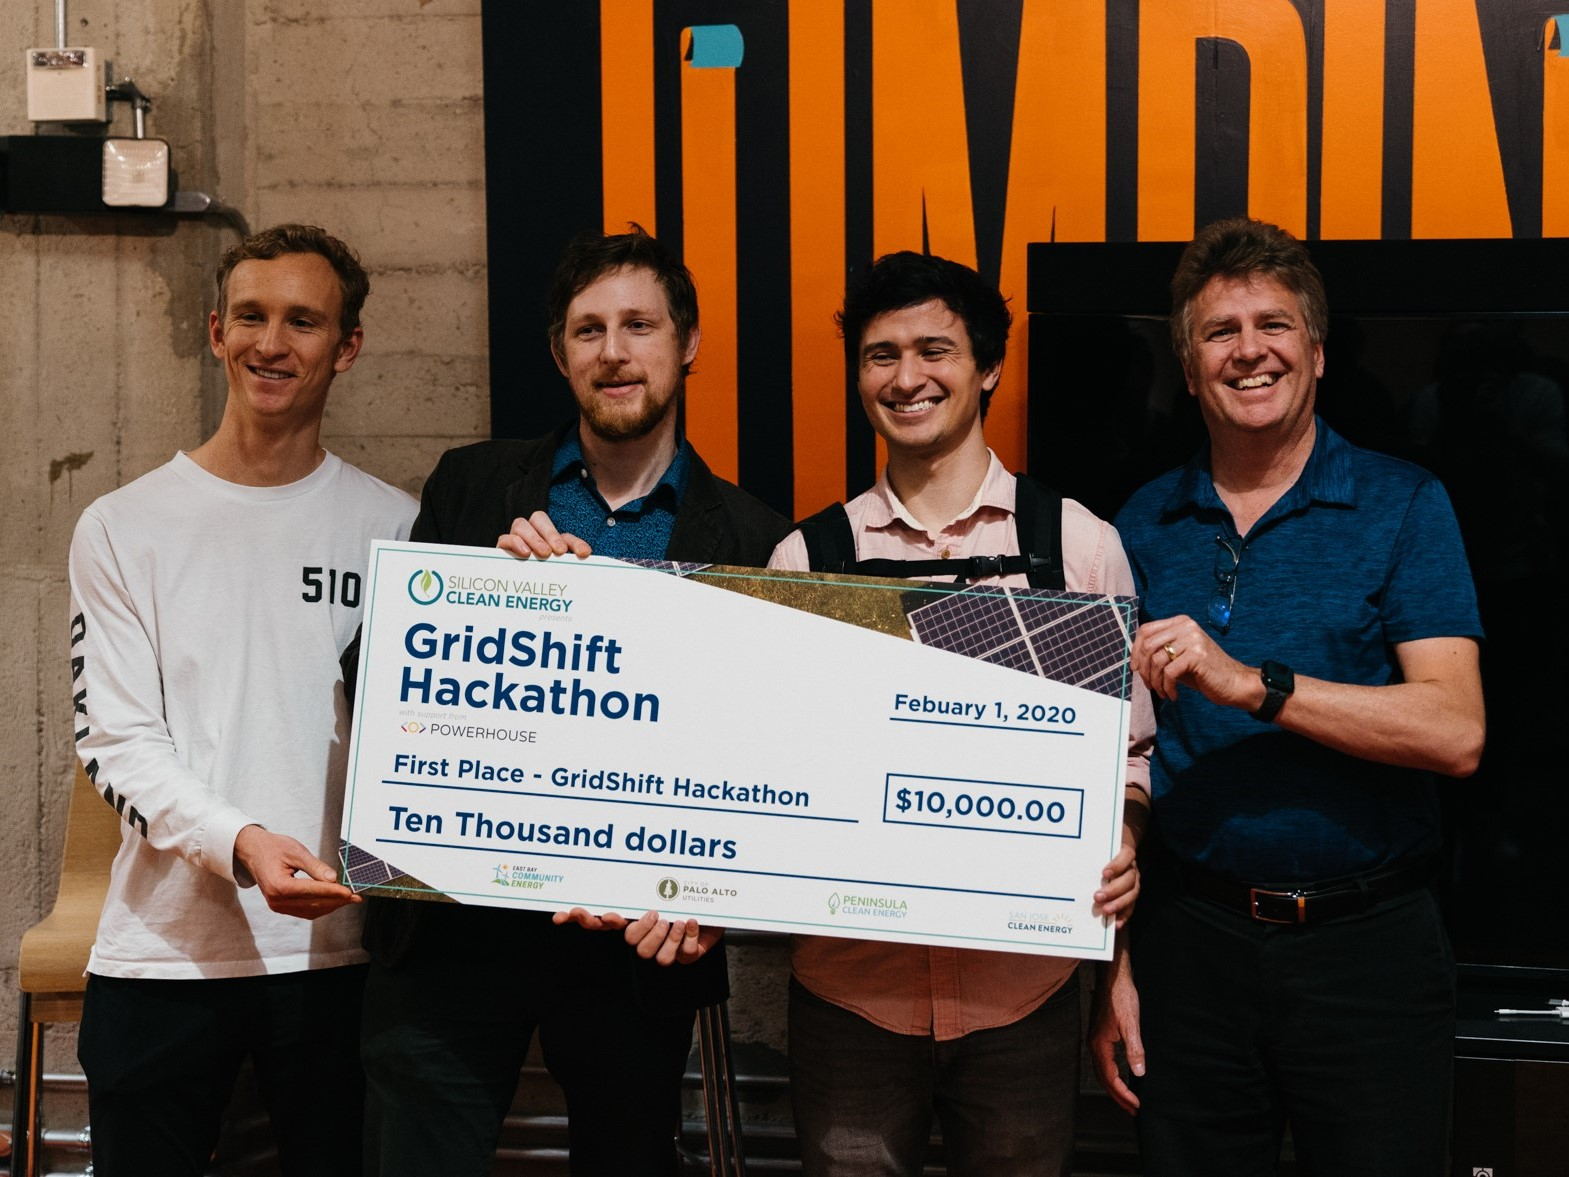 Four men holding a large $10,000 check - excited